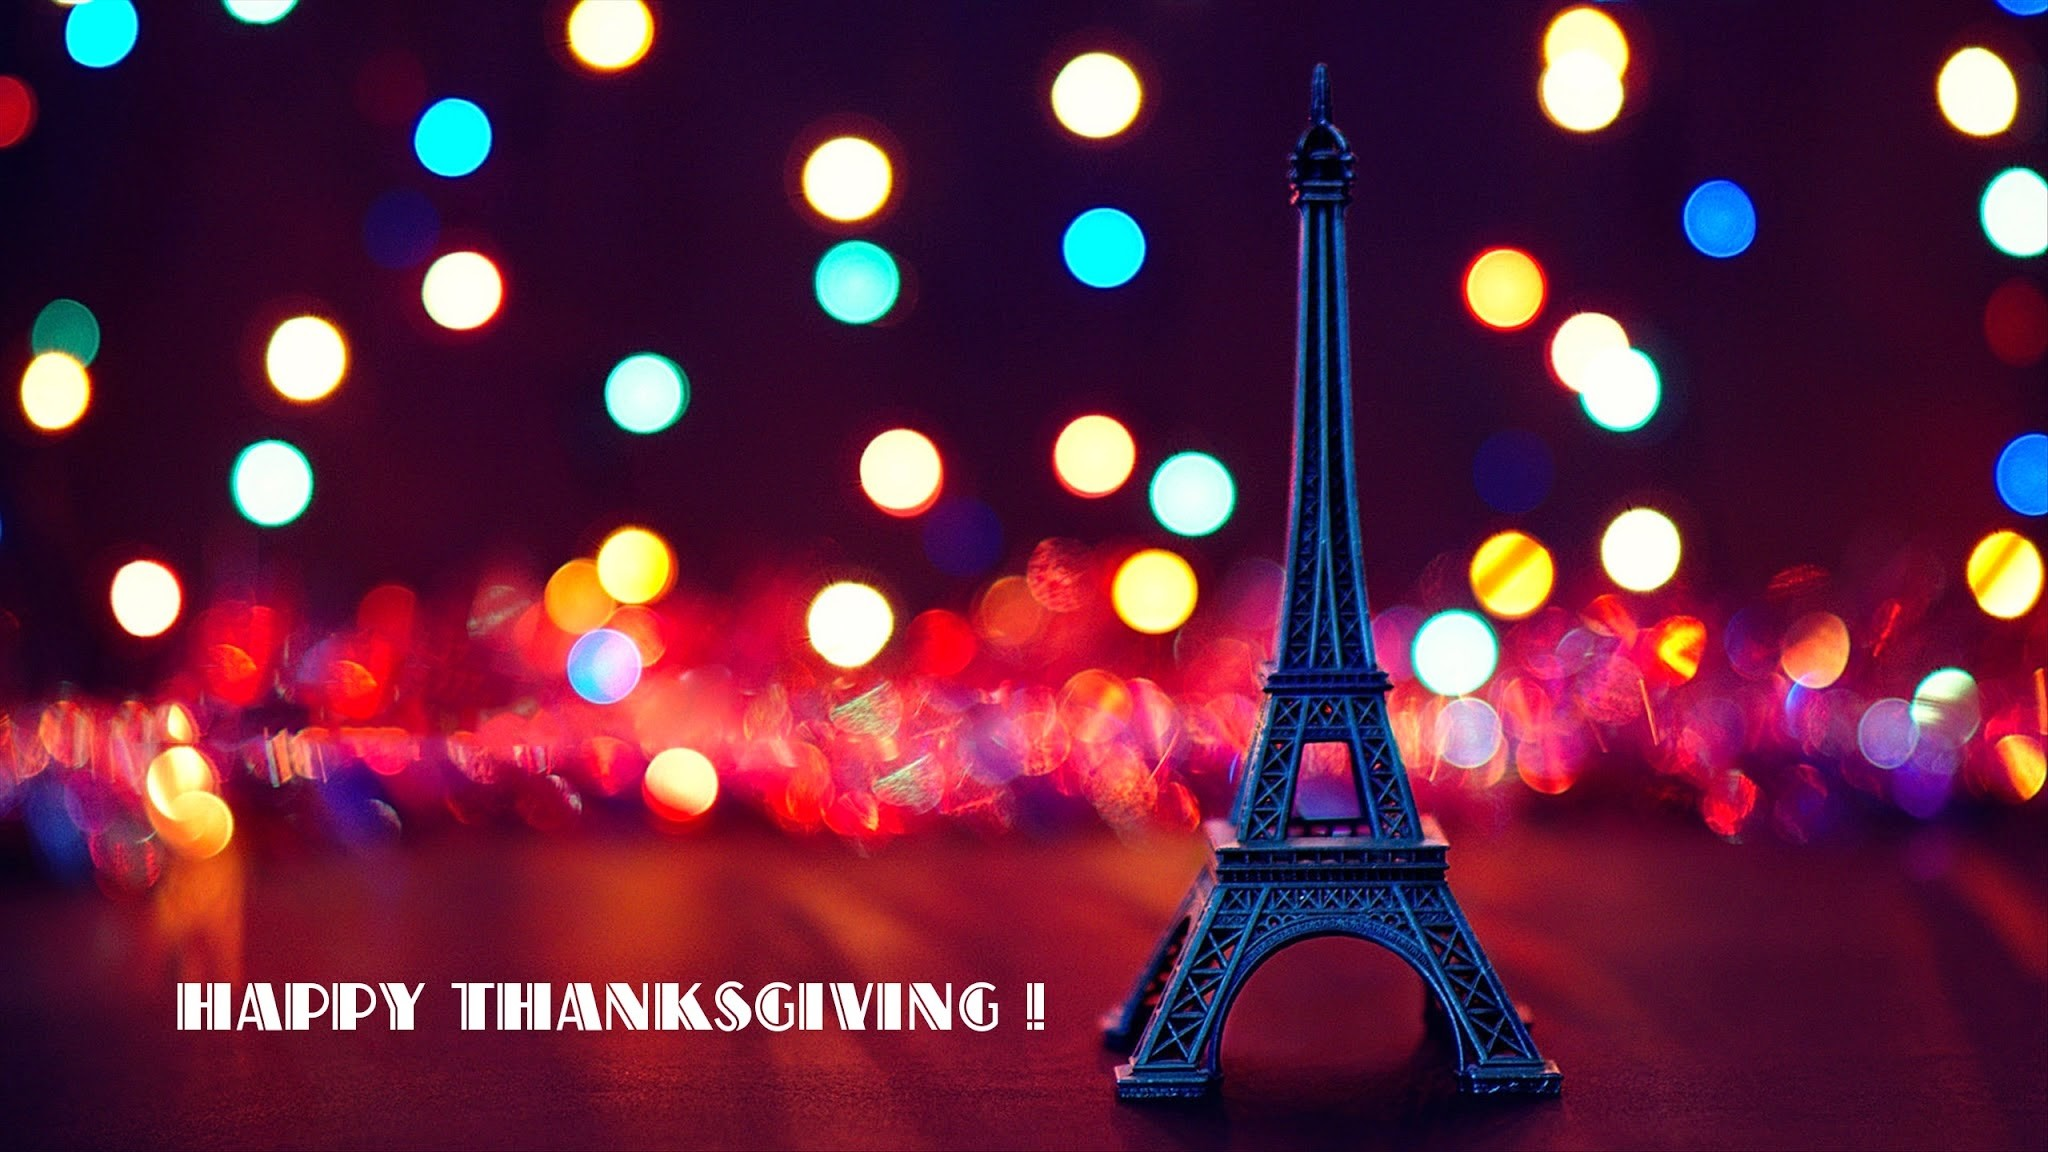 2048x1152 Happy Thanksgiving Weekend to all our American Friends! :) #thanksgiving  <ht.